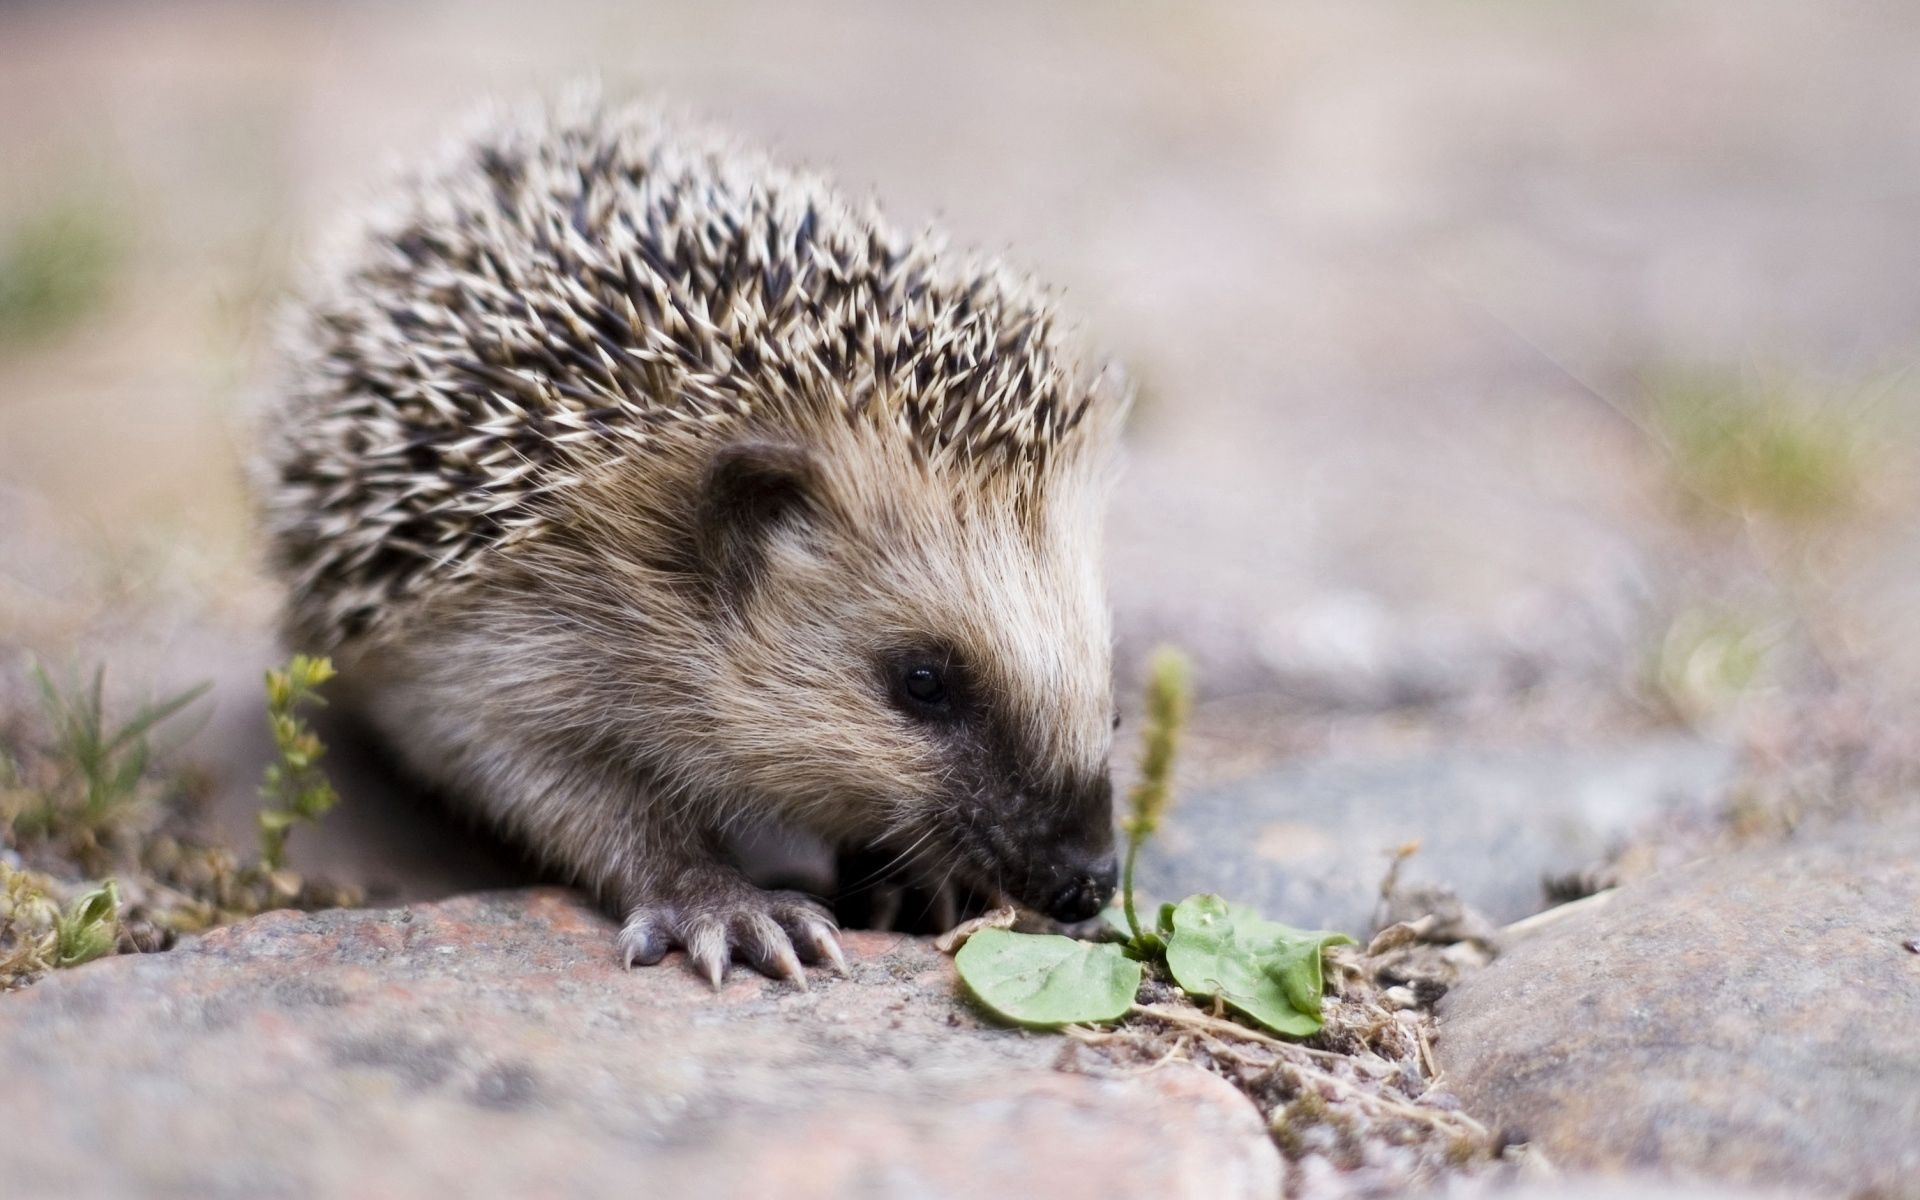 53133 download wallpaper Animals, Hedgehog, Spout, Nice, Sweetheart, Barbed, Spiny screensavers and pictures for free